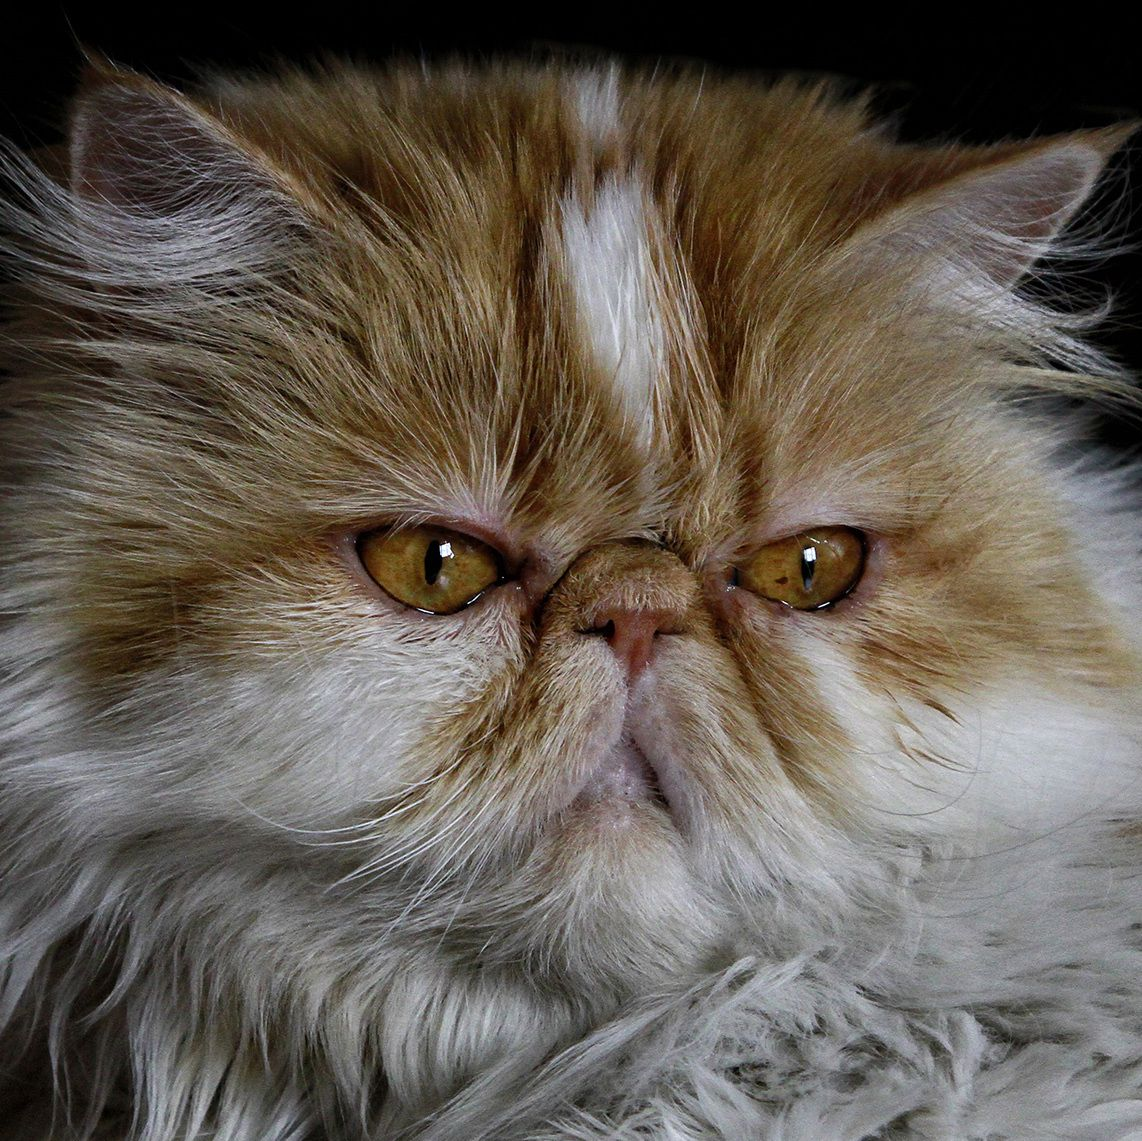 Pin By Shabnam Rezapour On Butterfly Painting In 2020 Persian Cat Doll Face Persian Cat Persian Kittens For Sale